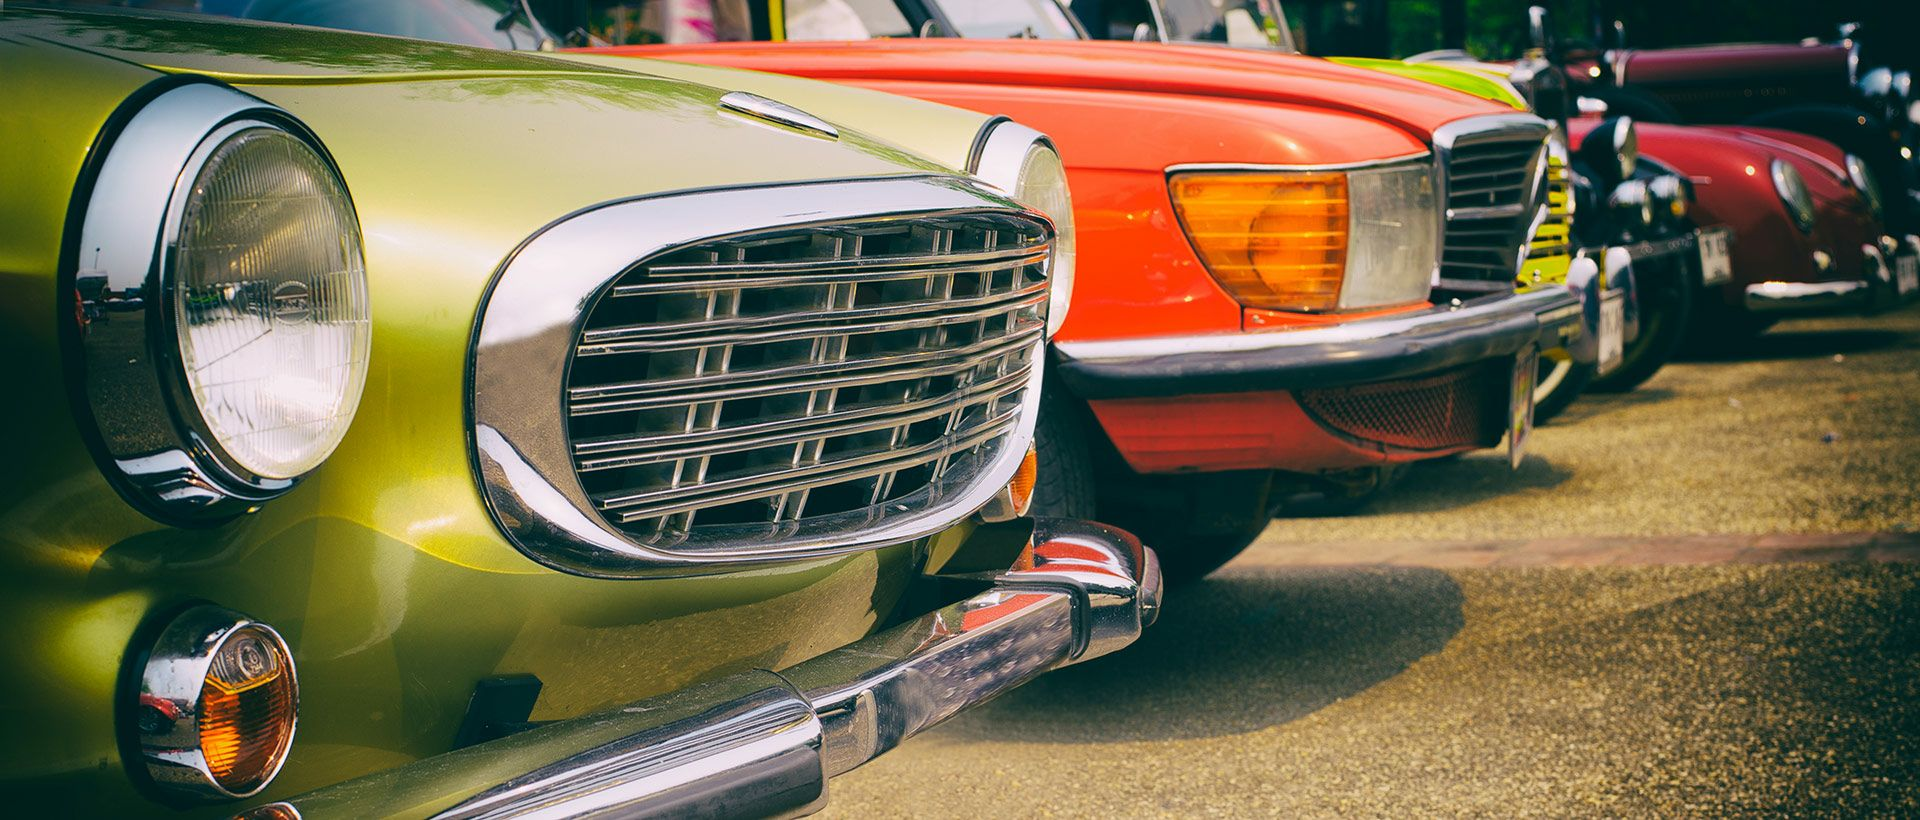 Camping 'Vintage Days' in Périgueux